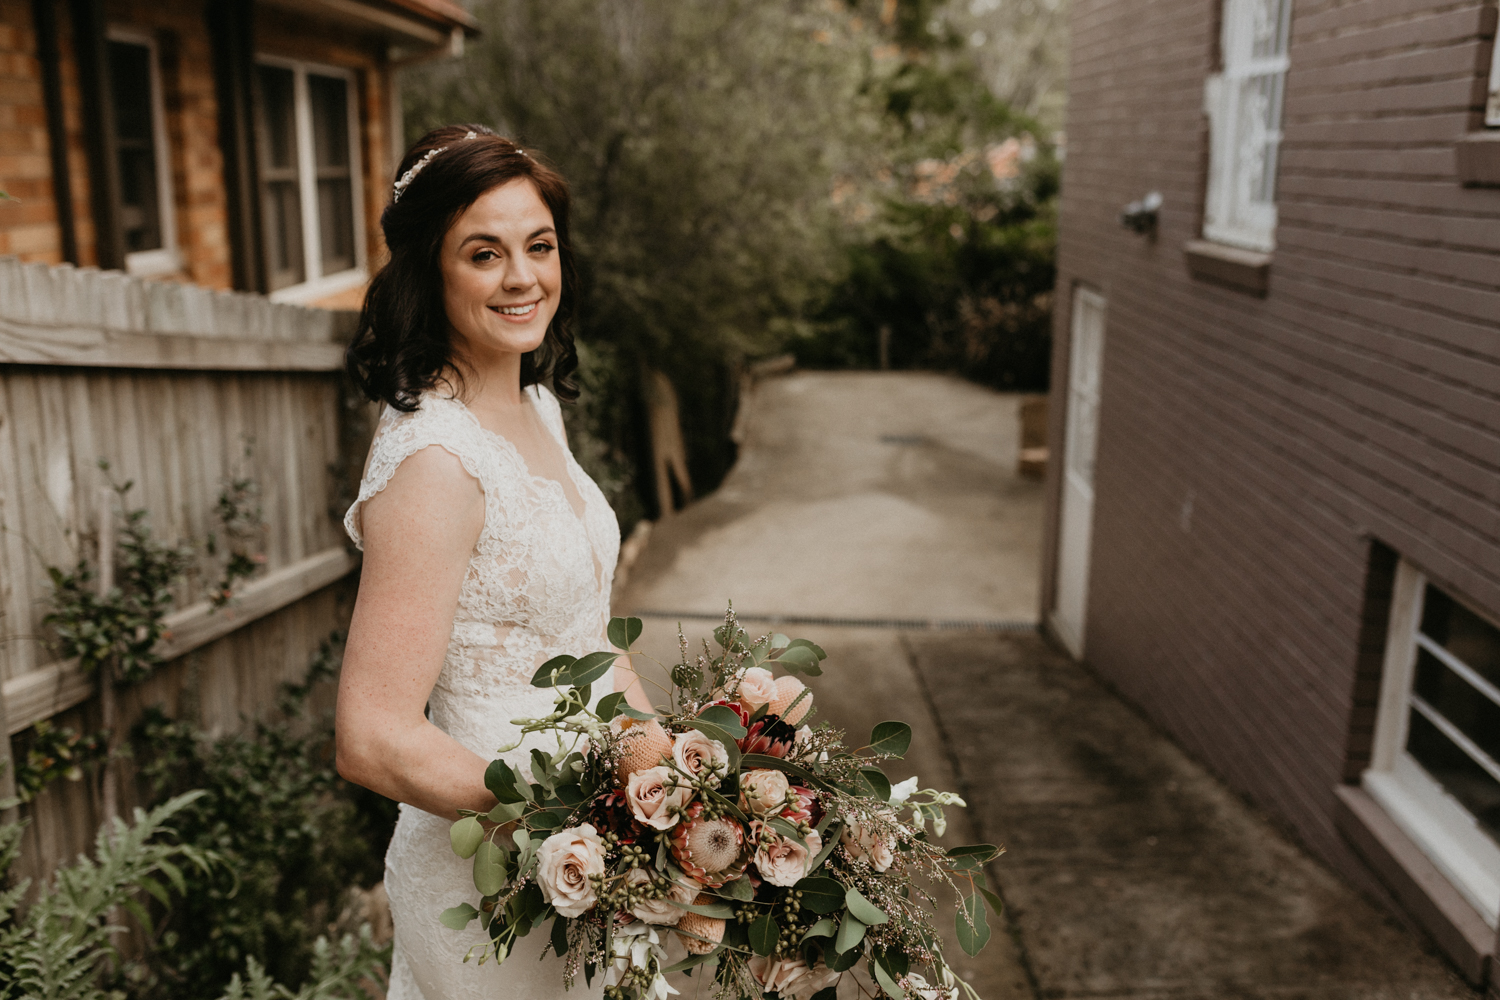 Sydney Romantic Authentic Natural Free Spirit Candid Wedding Photography-73.jpg